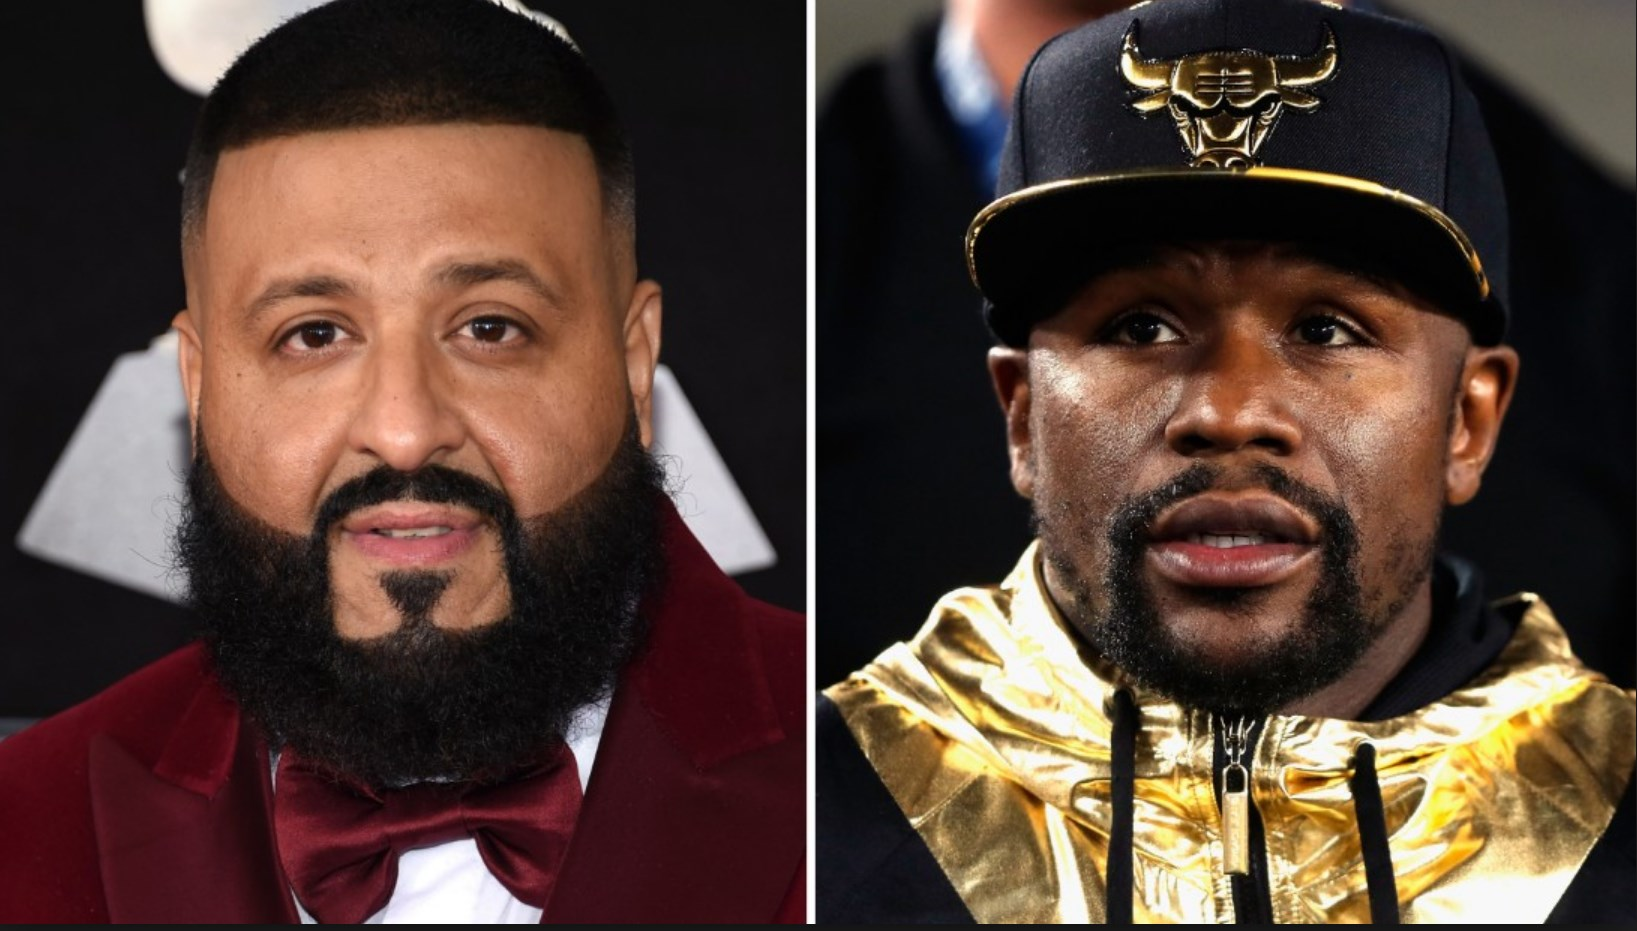 Floyd Mayweather and DJ Khaled dodge a lawsuit by ICO investors